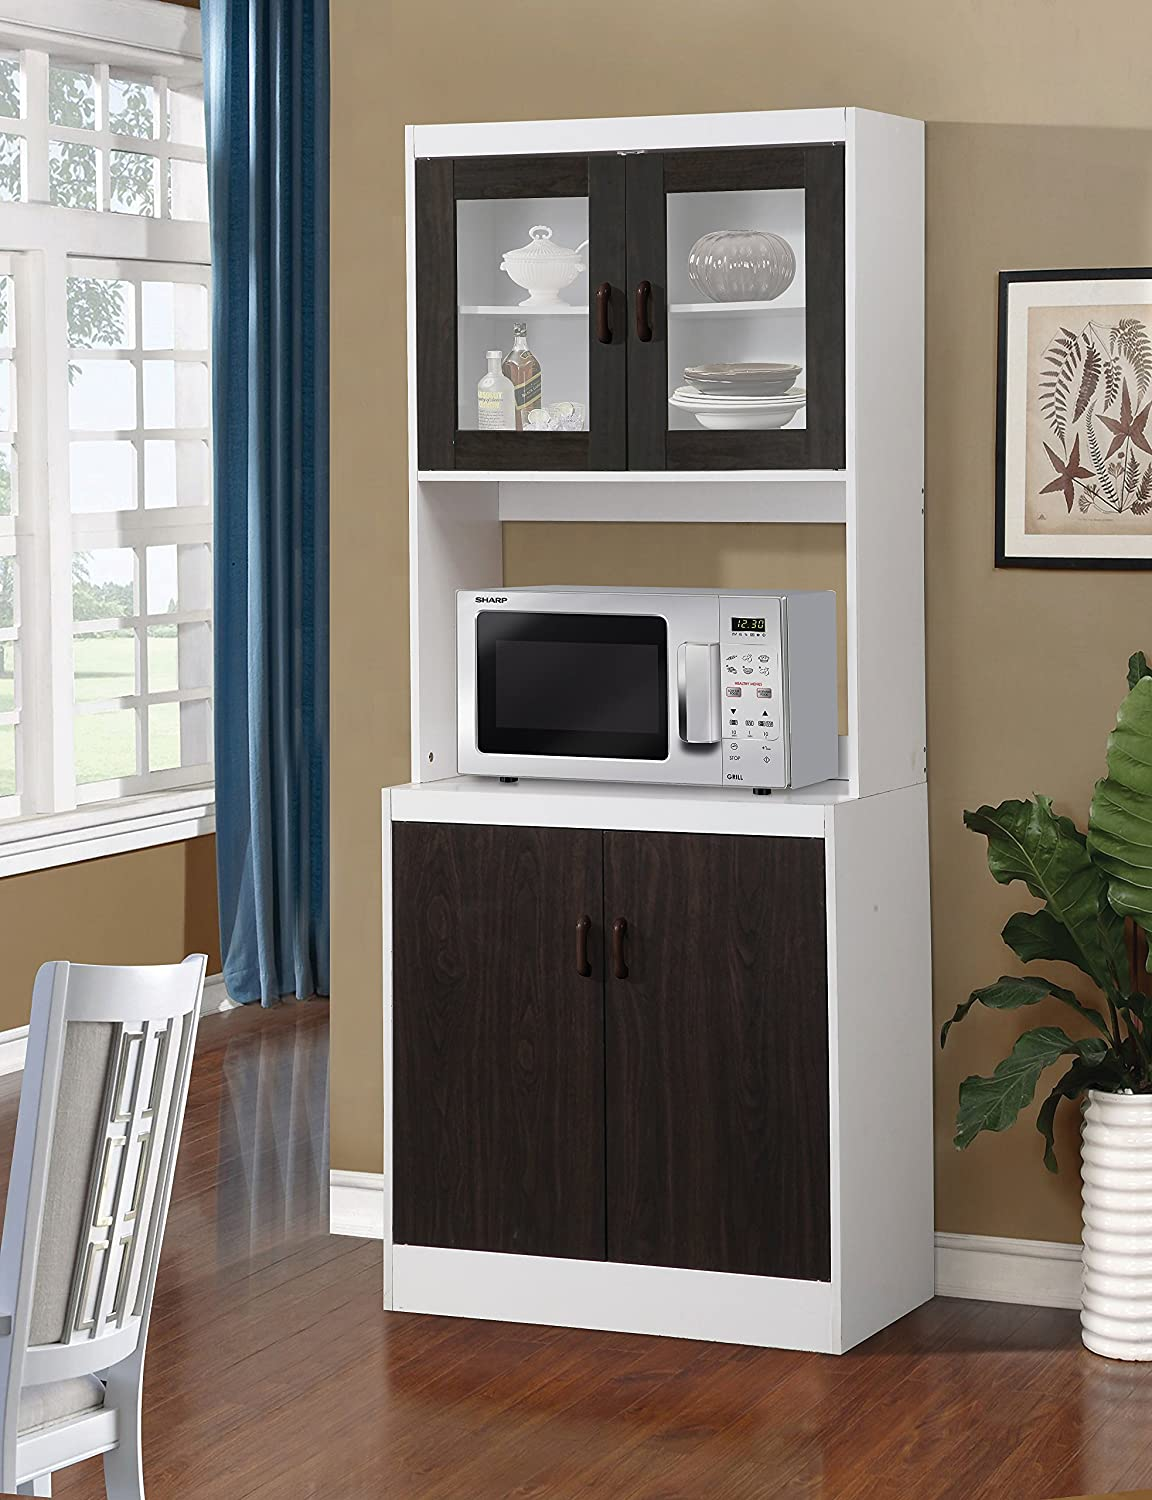 amazon com home source 157brd tall kitchen cabinet with solid amazon com home source 157brd tall kitchen cabinet with solid dark brown doors 29 x 16 x 72